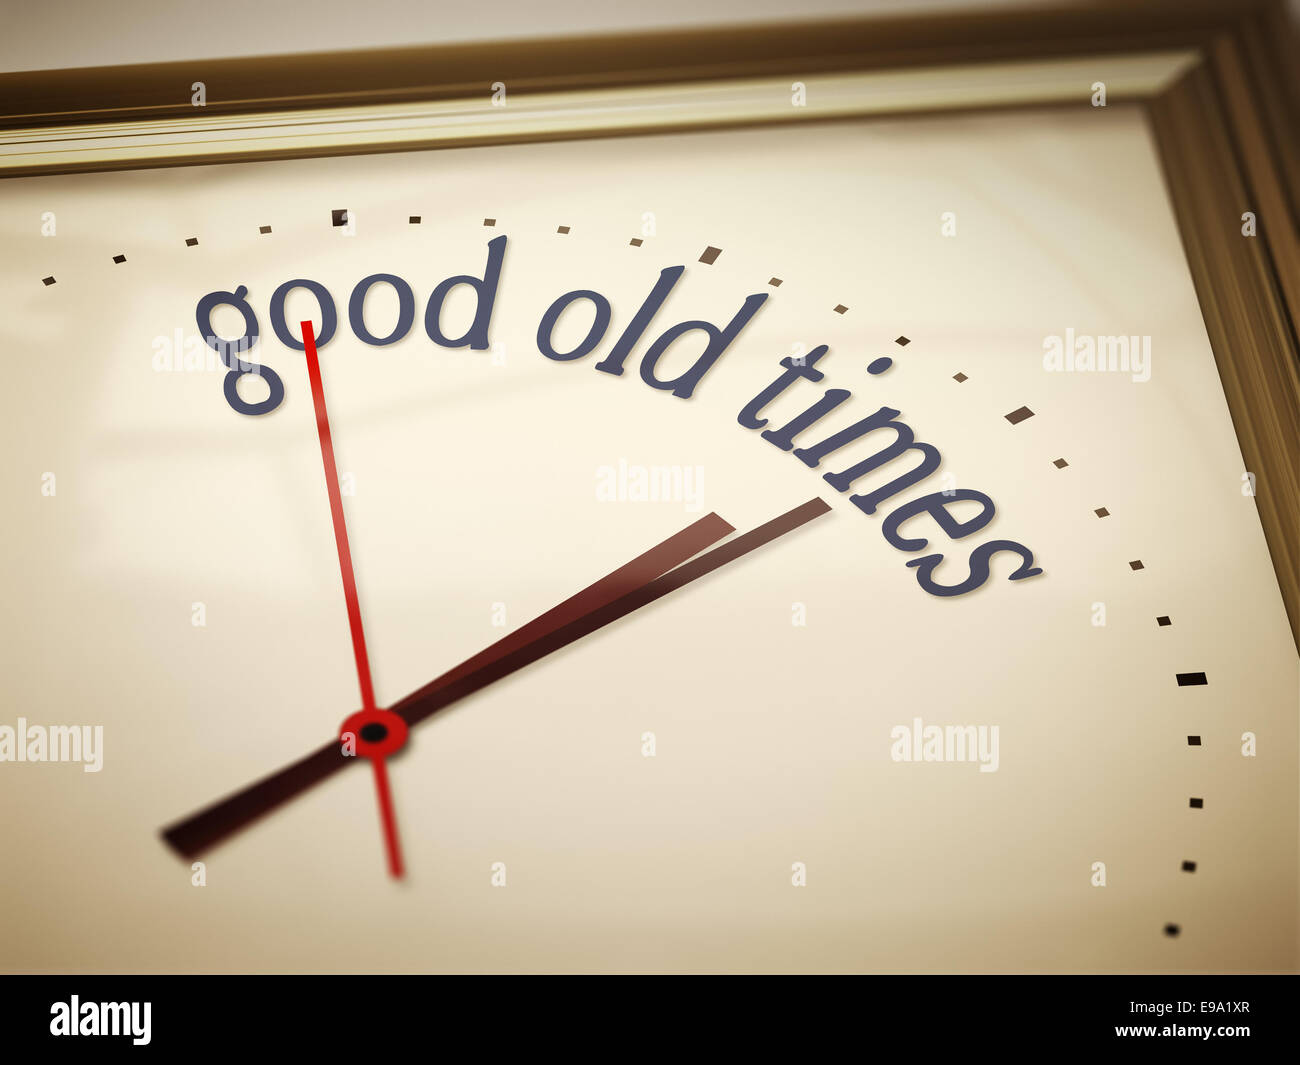 good old times - Stock Image